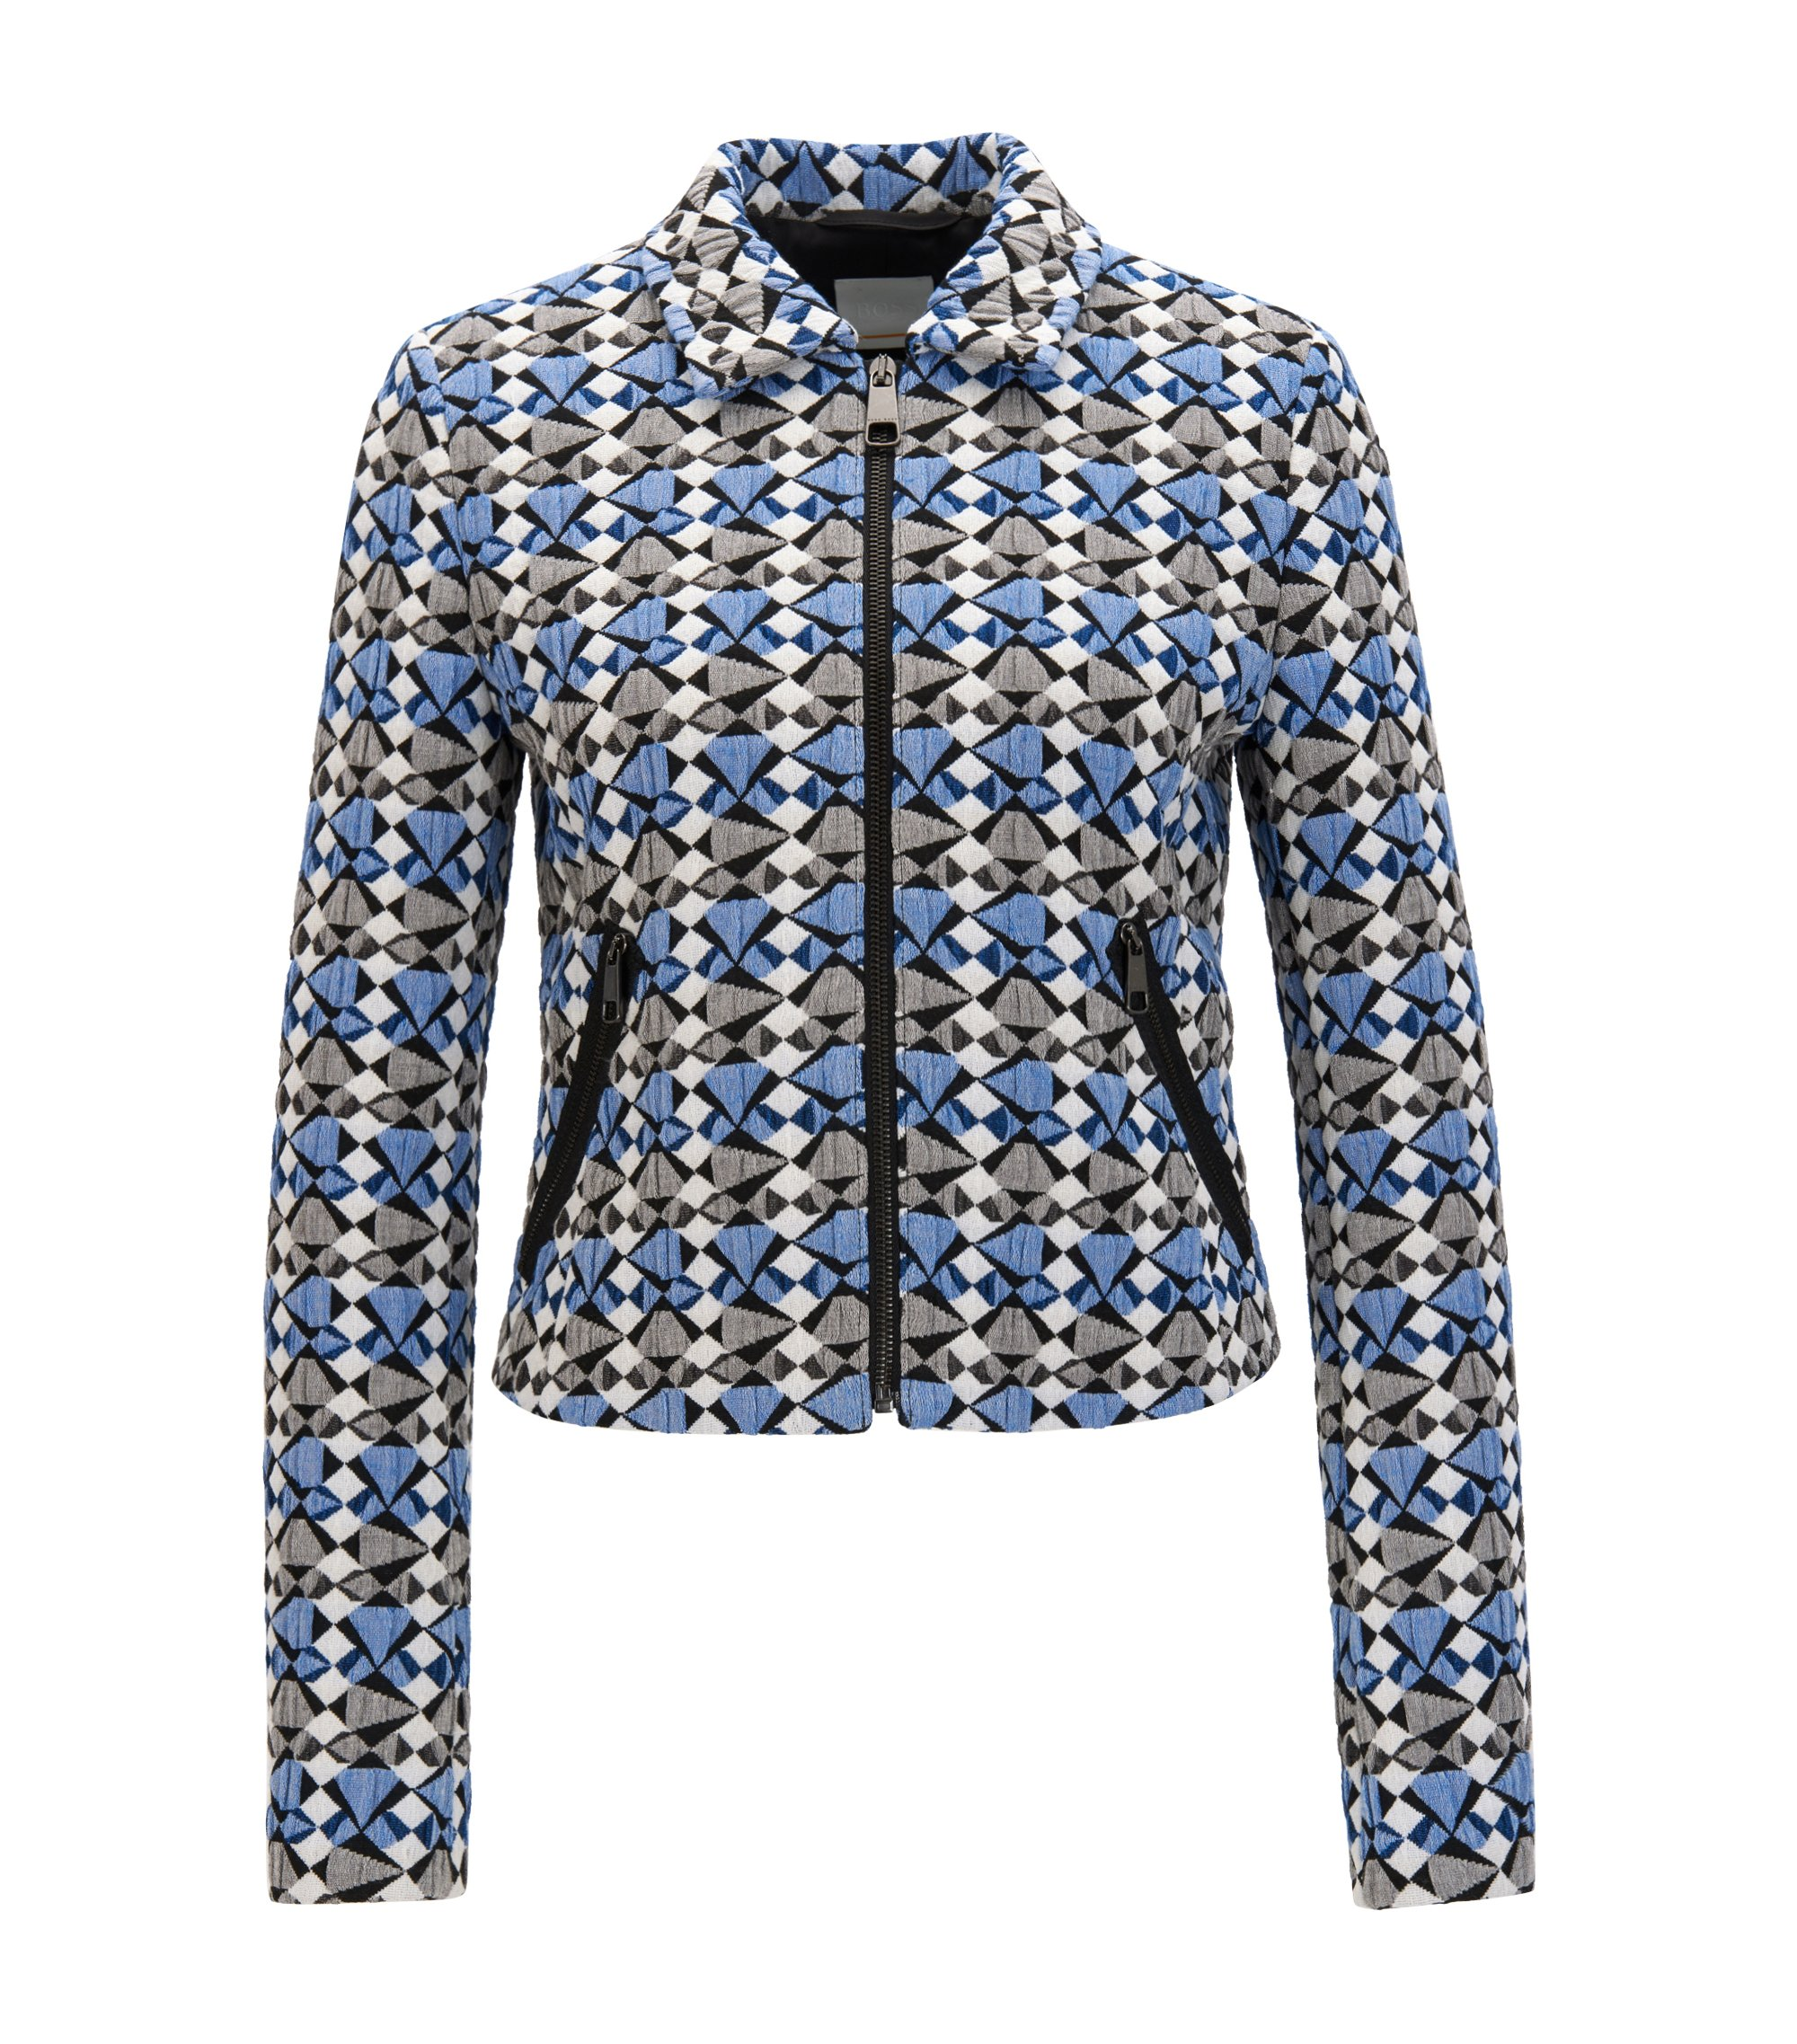 Regular-fit jacket in multicoloured stretch jacquard, Patterned